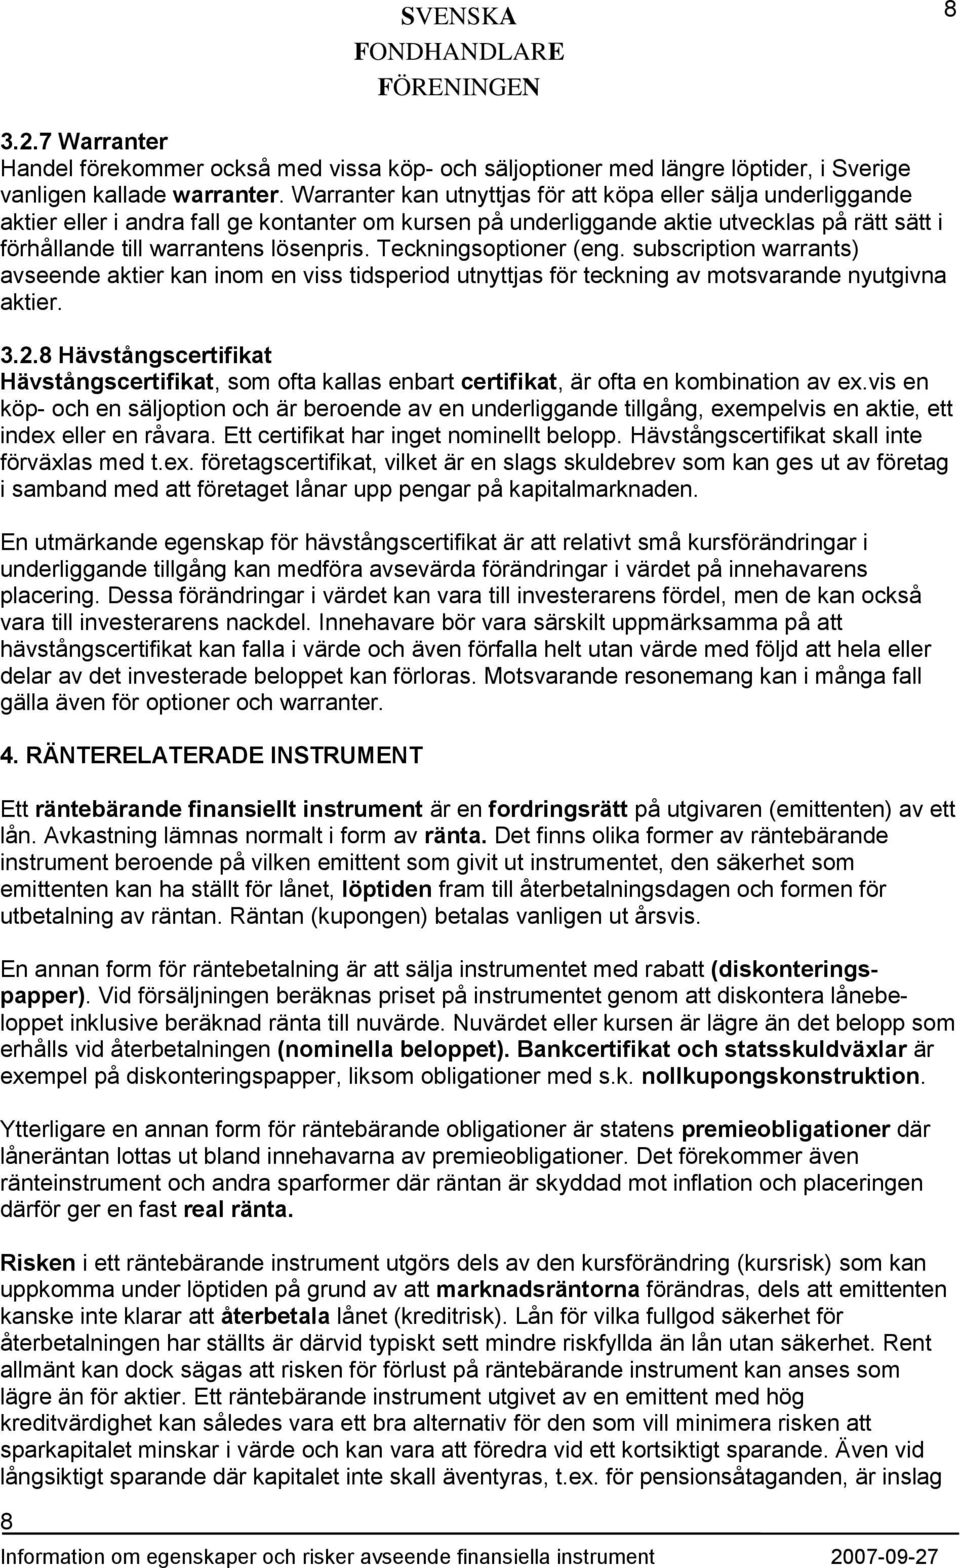 Teckningsoptioner (eng. subscription warrants) avseende aktier kan inom en viss tidsperiod utnyttjas för teckning av motsvarande nyutgivna aktier. 3.2.